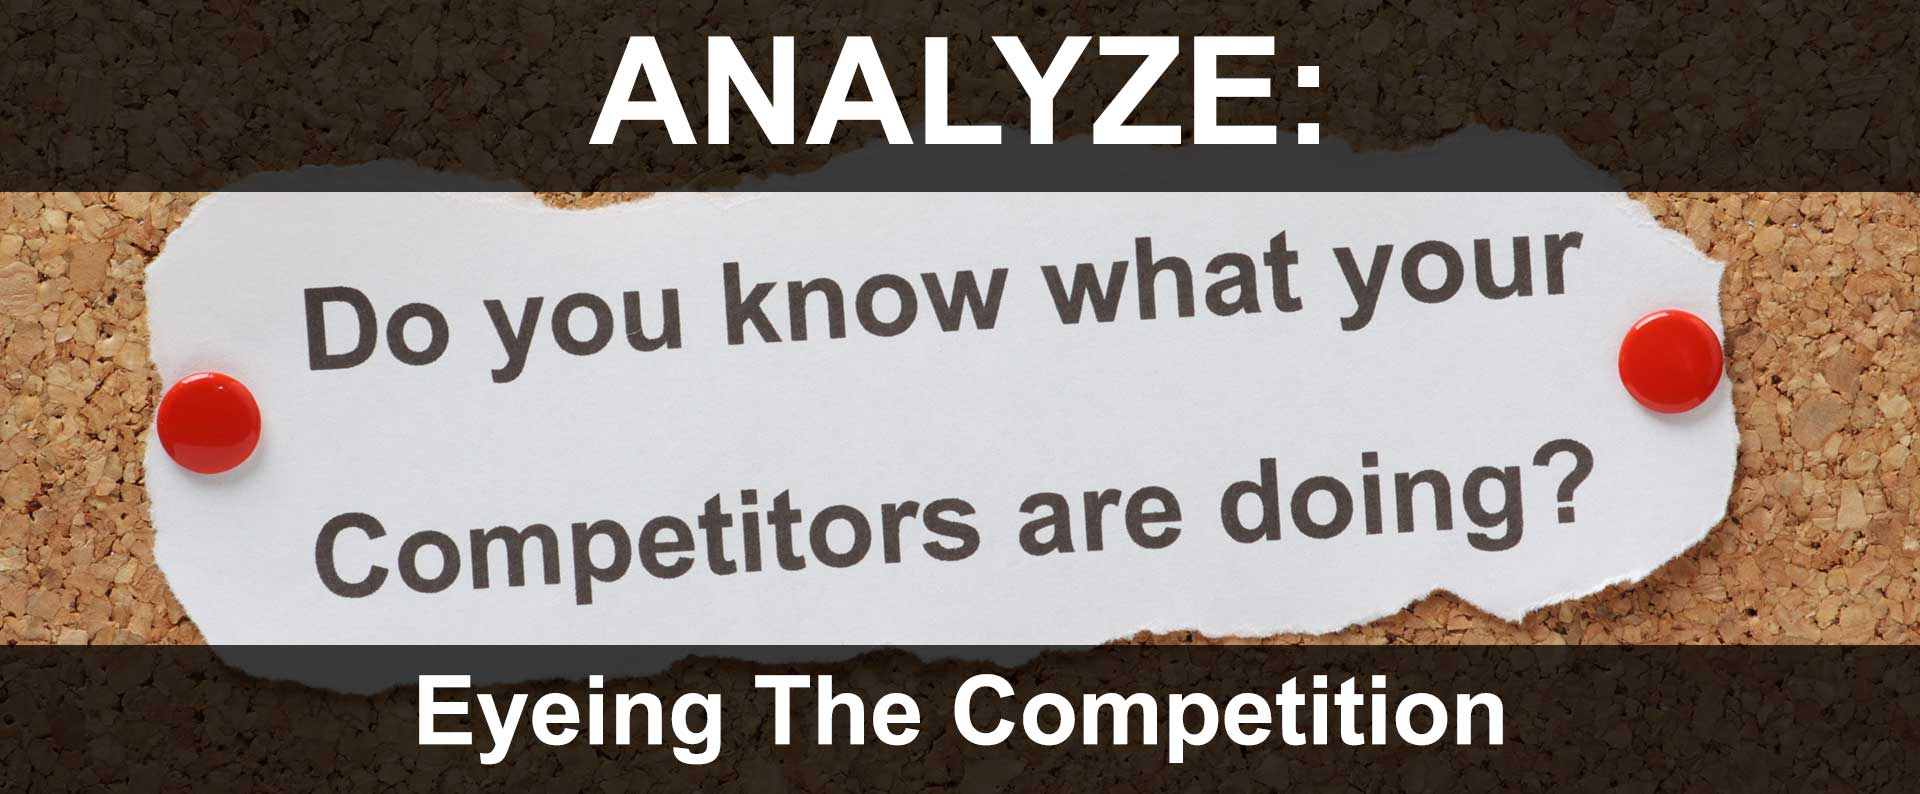 Eyeing The Competition - What Are They Doing Right Or Wrong? Now Improve It!